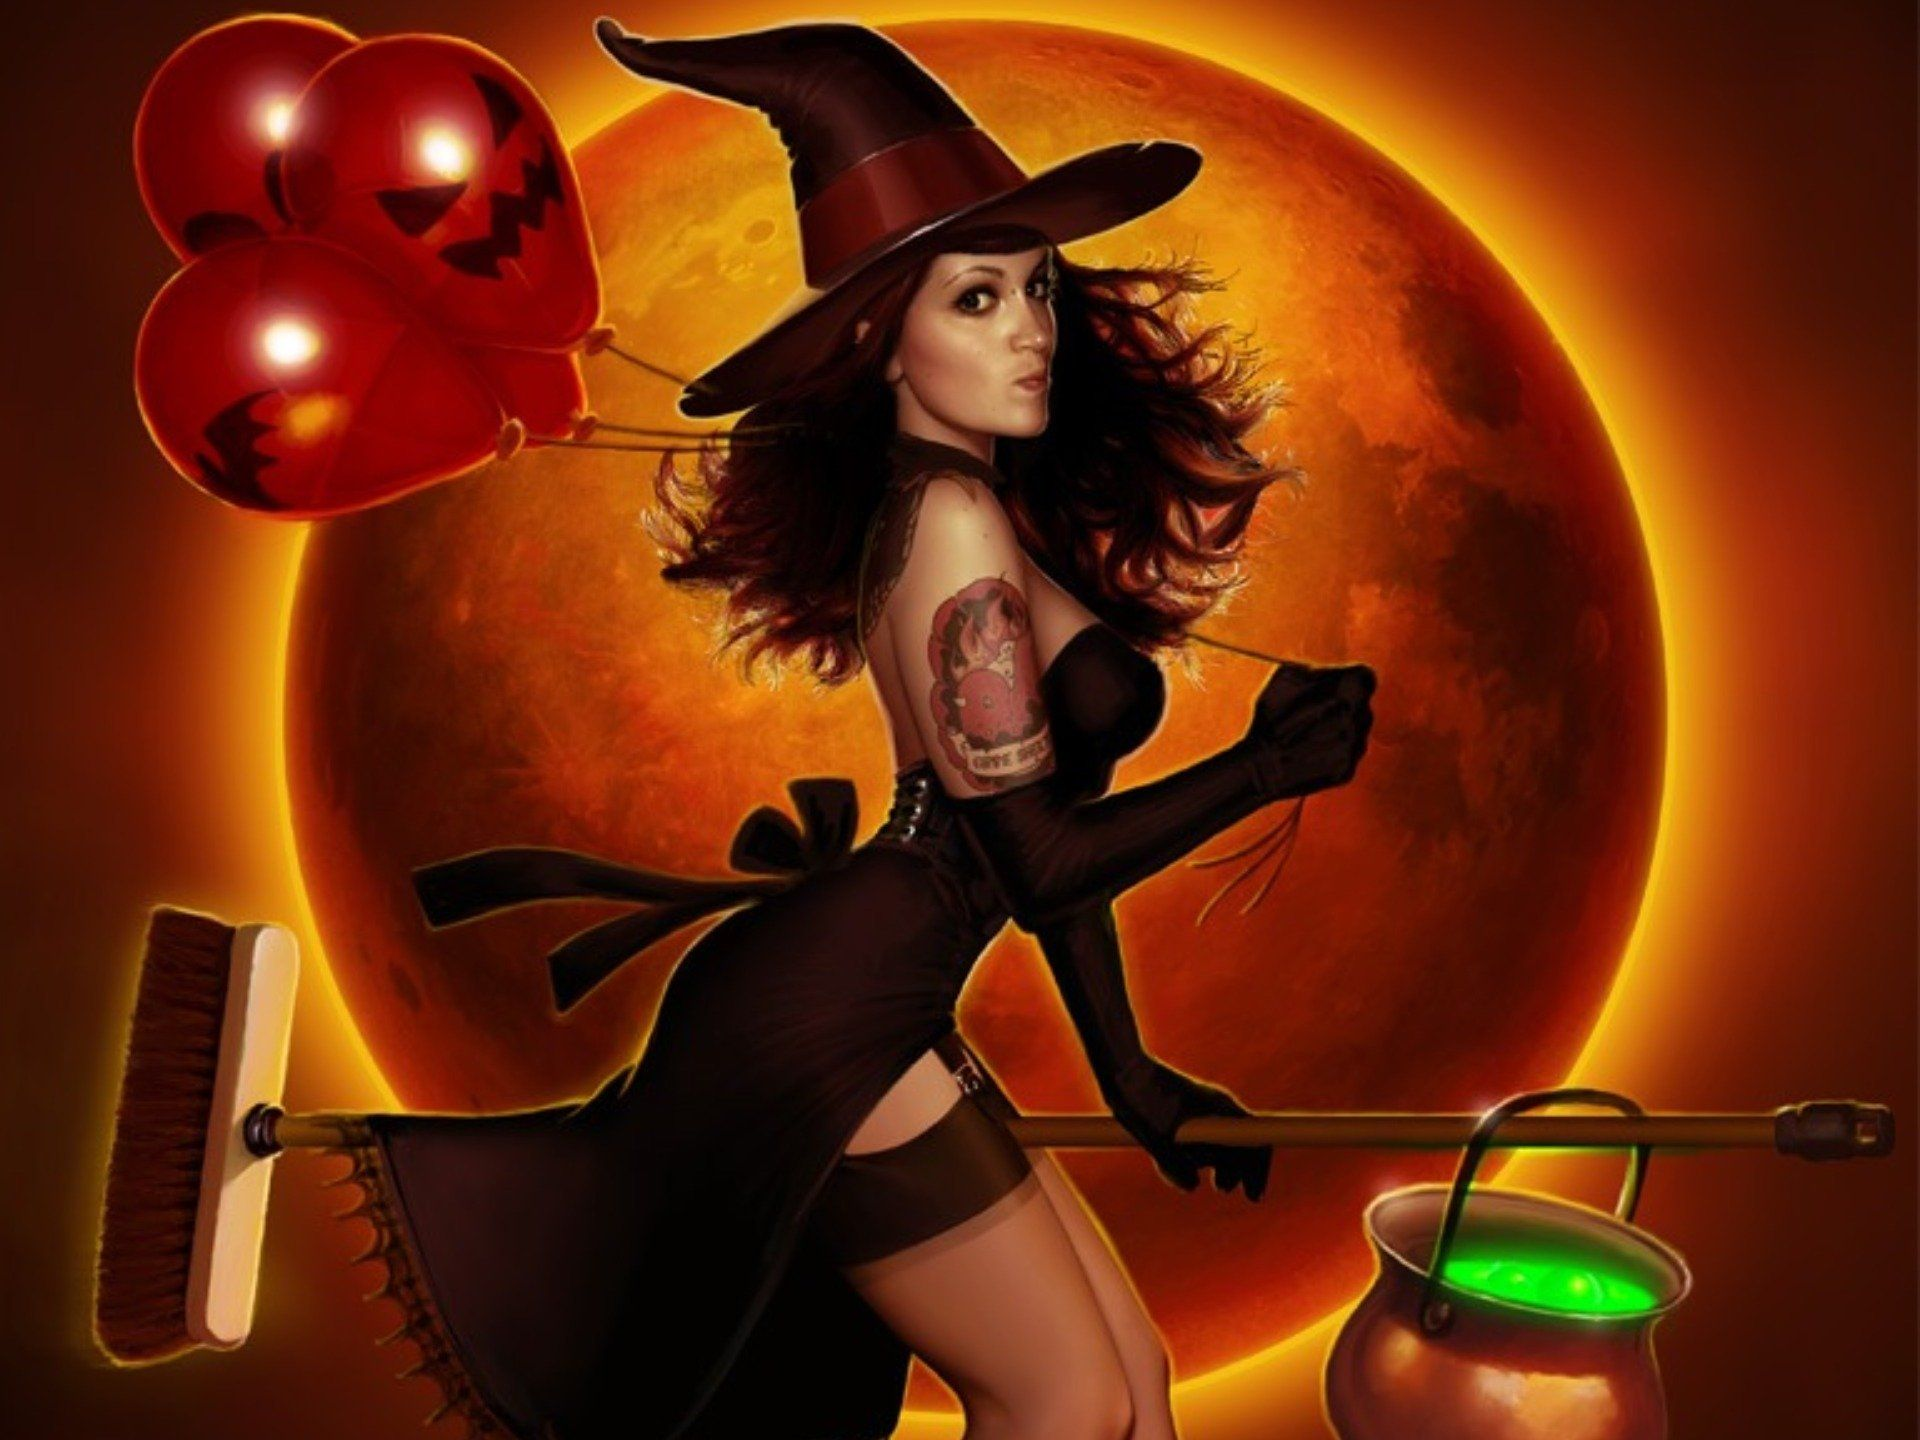 Scary Halloween Witch Wallpapers - Wallpaper Cave